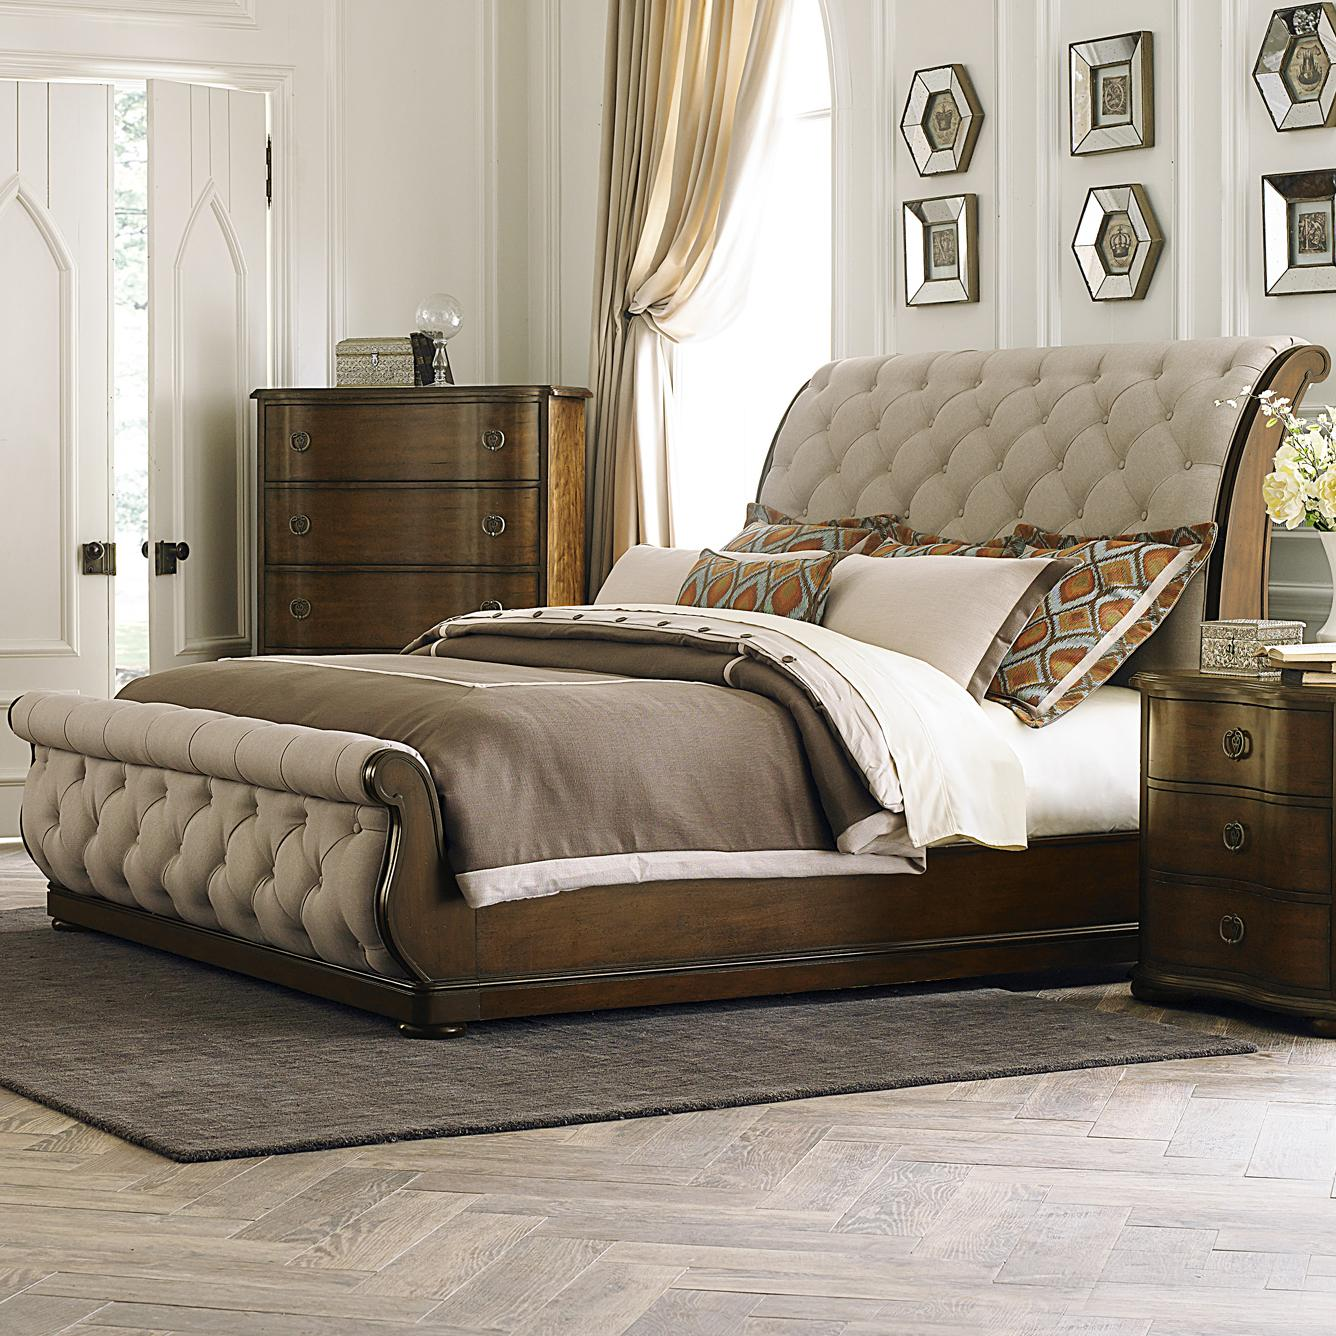 Beds And Beds Cotswold Transitional Upholstered King Sleigh Bed By Liberty Furniture At Royal Furniture